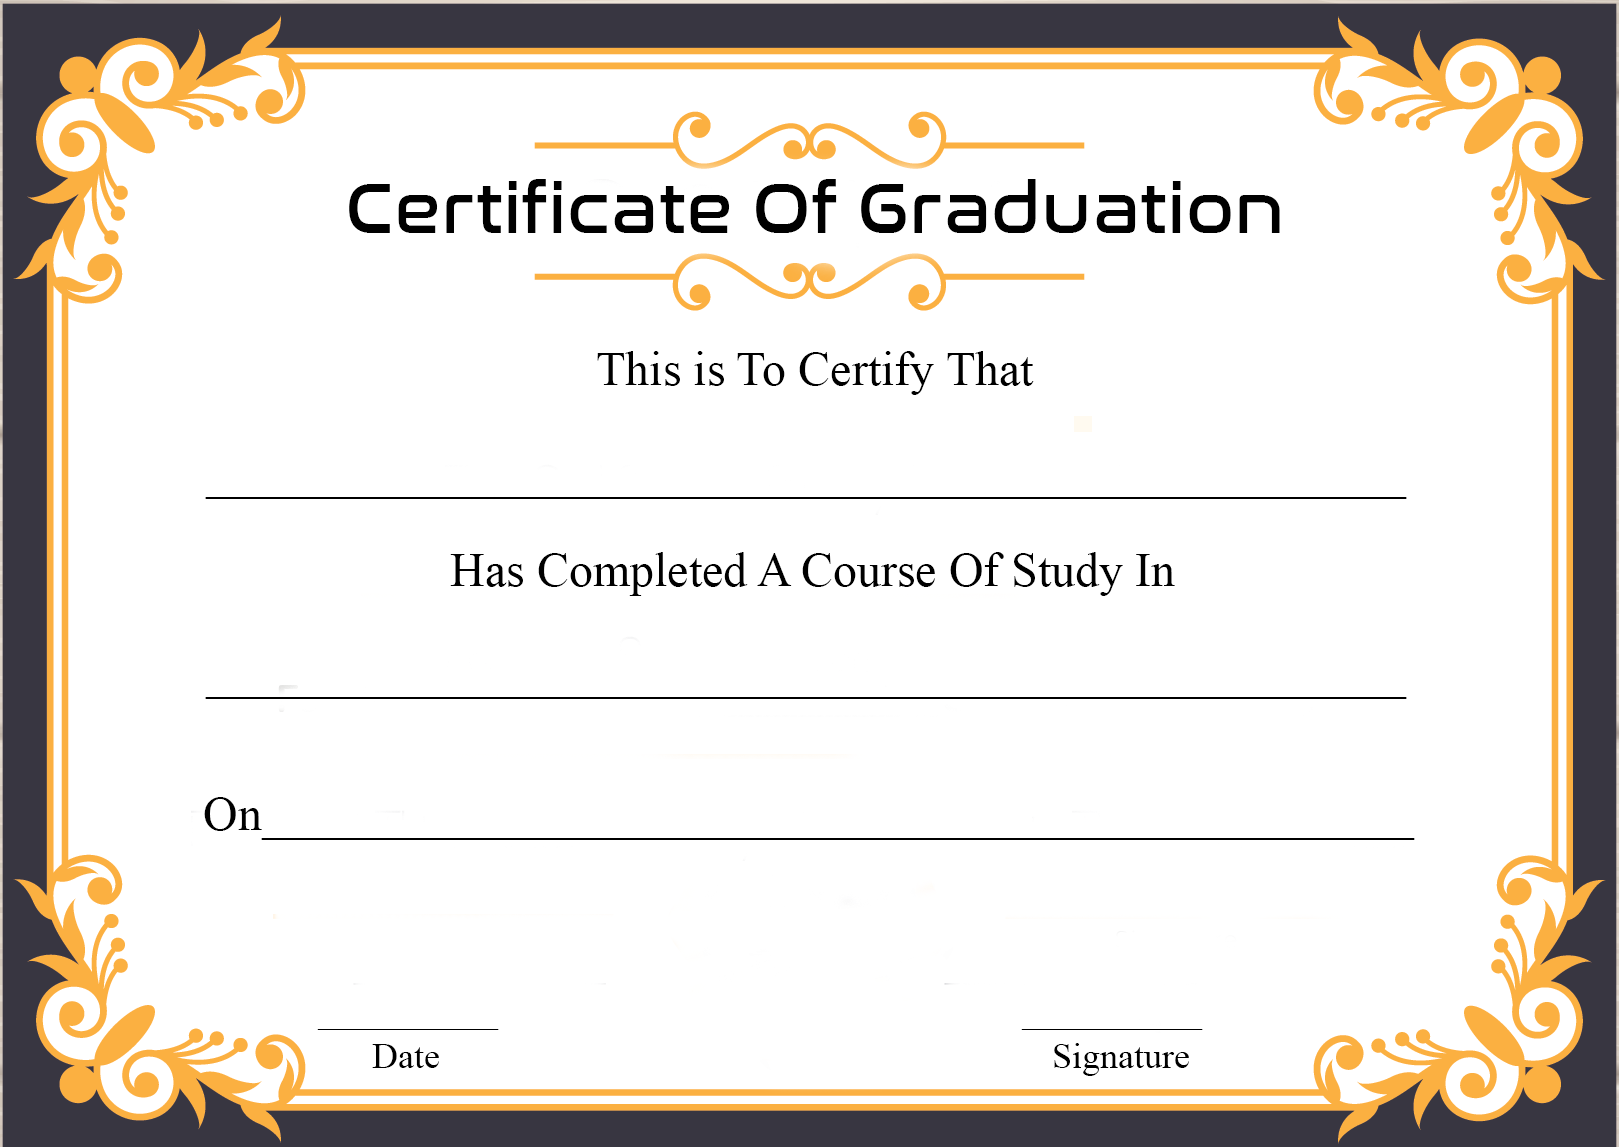 Certificate Of Graduation Sample